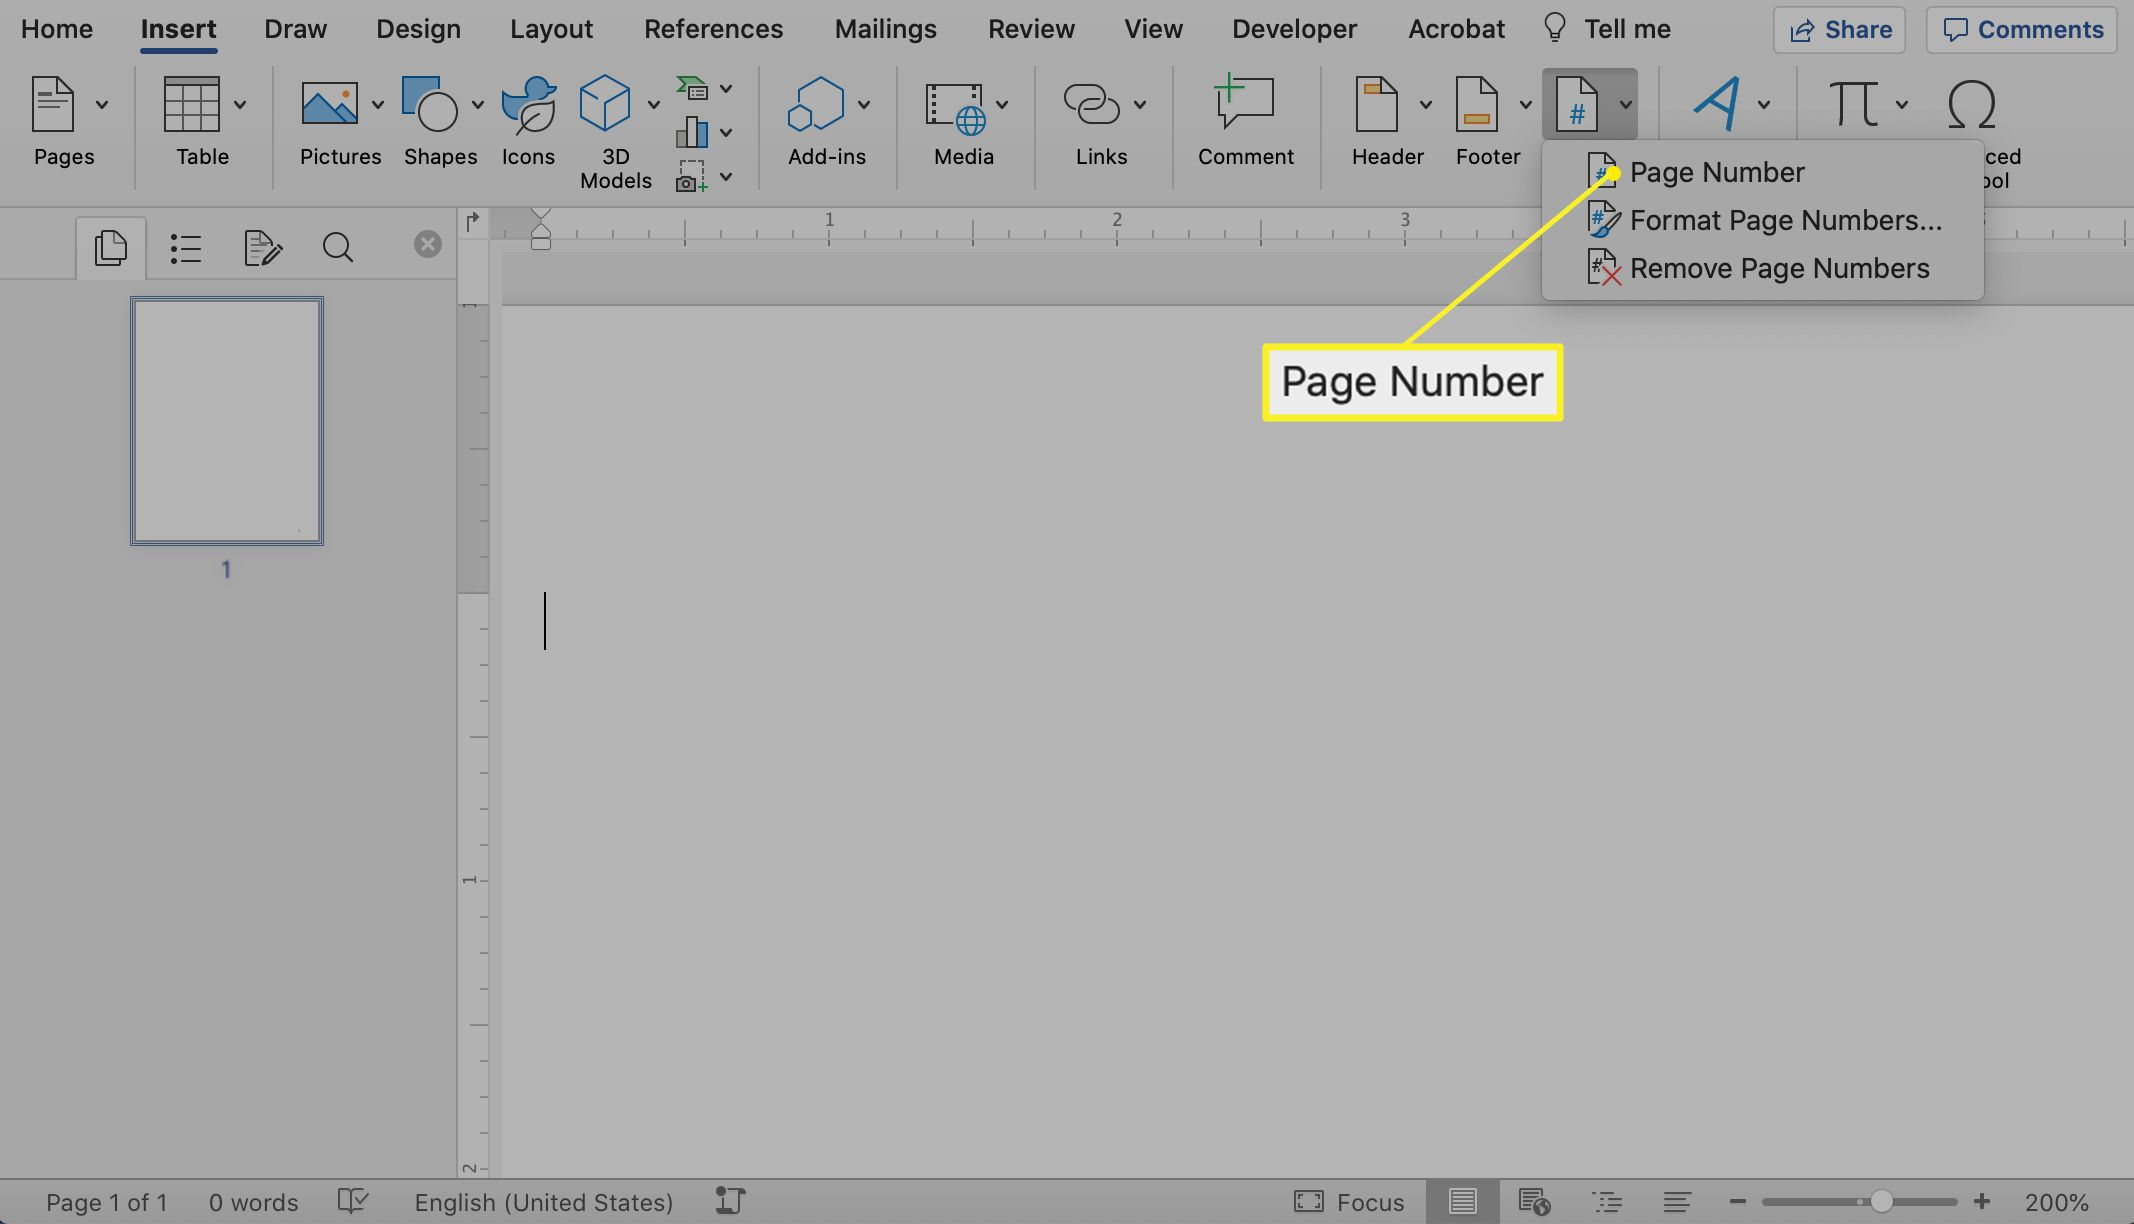 Page Number selected from Page Number drop-down menu in Word